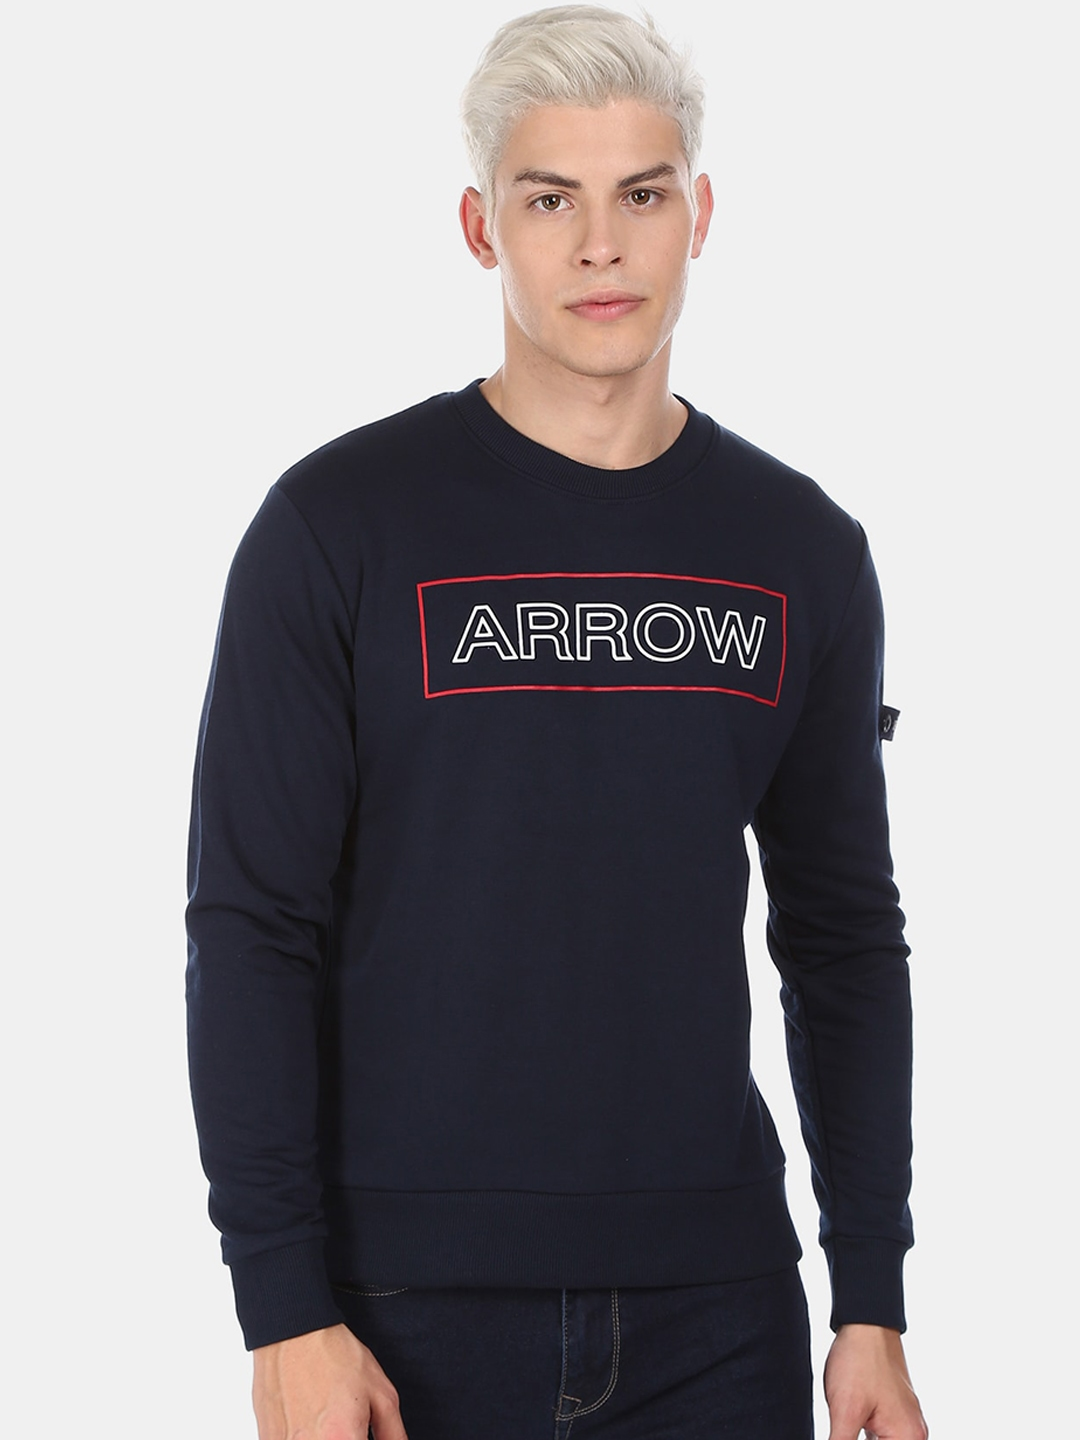 Arrow Sport Men Navy Blue Printed Sweatshirt